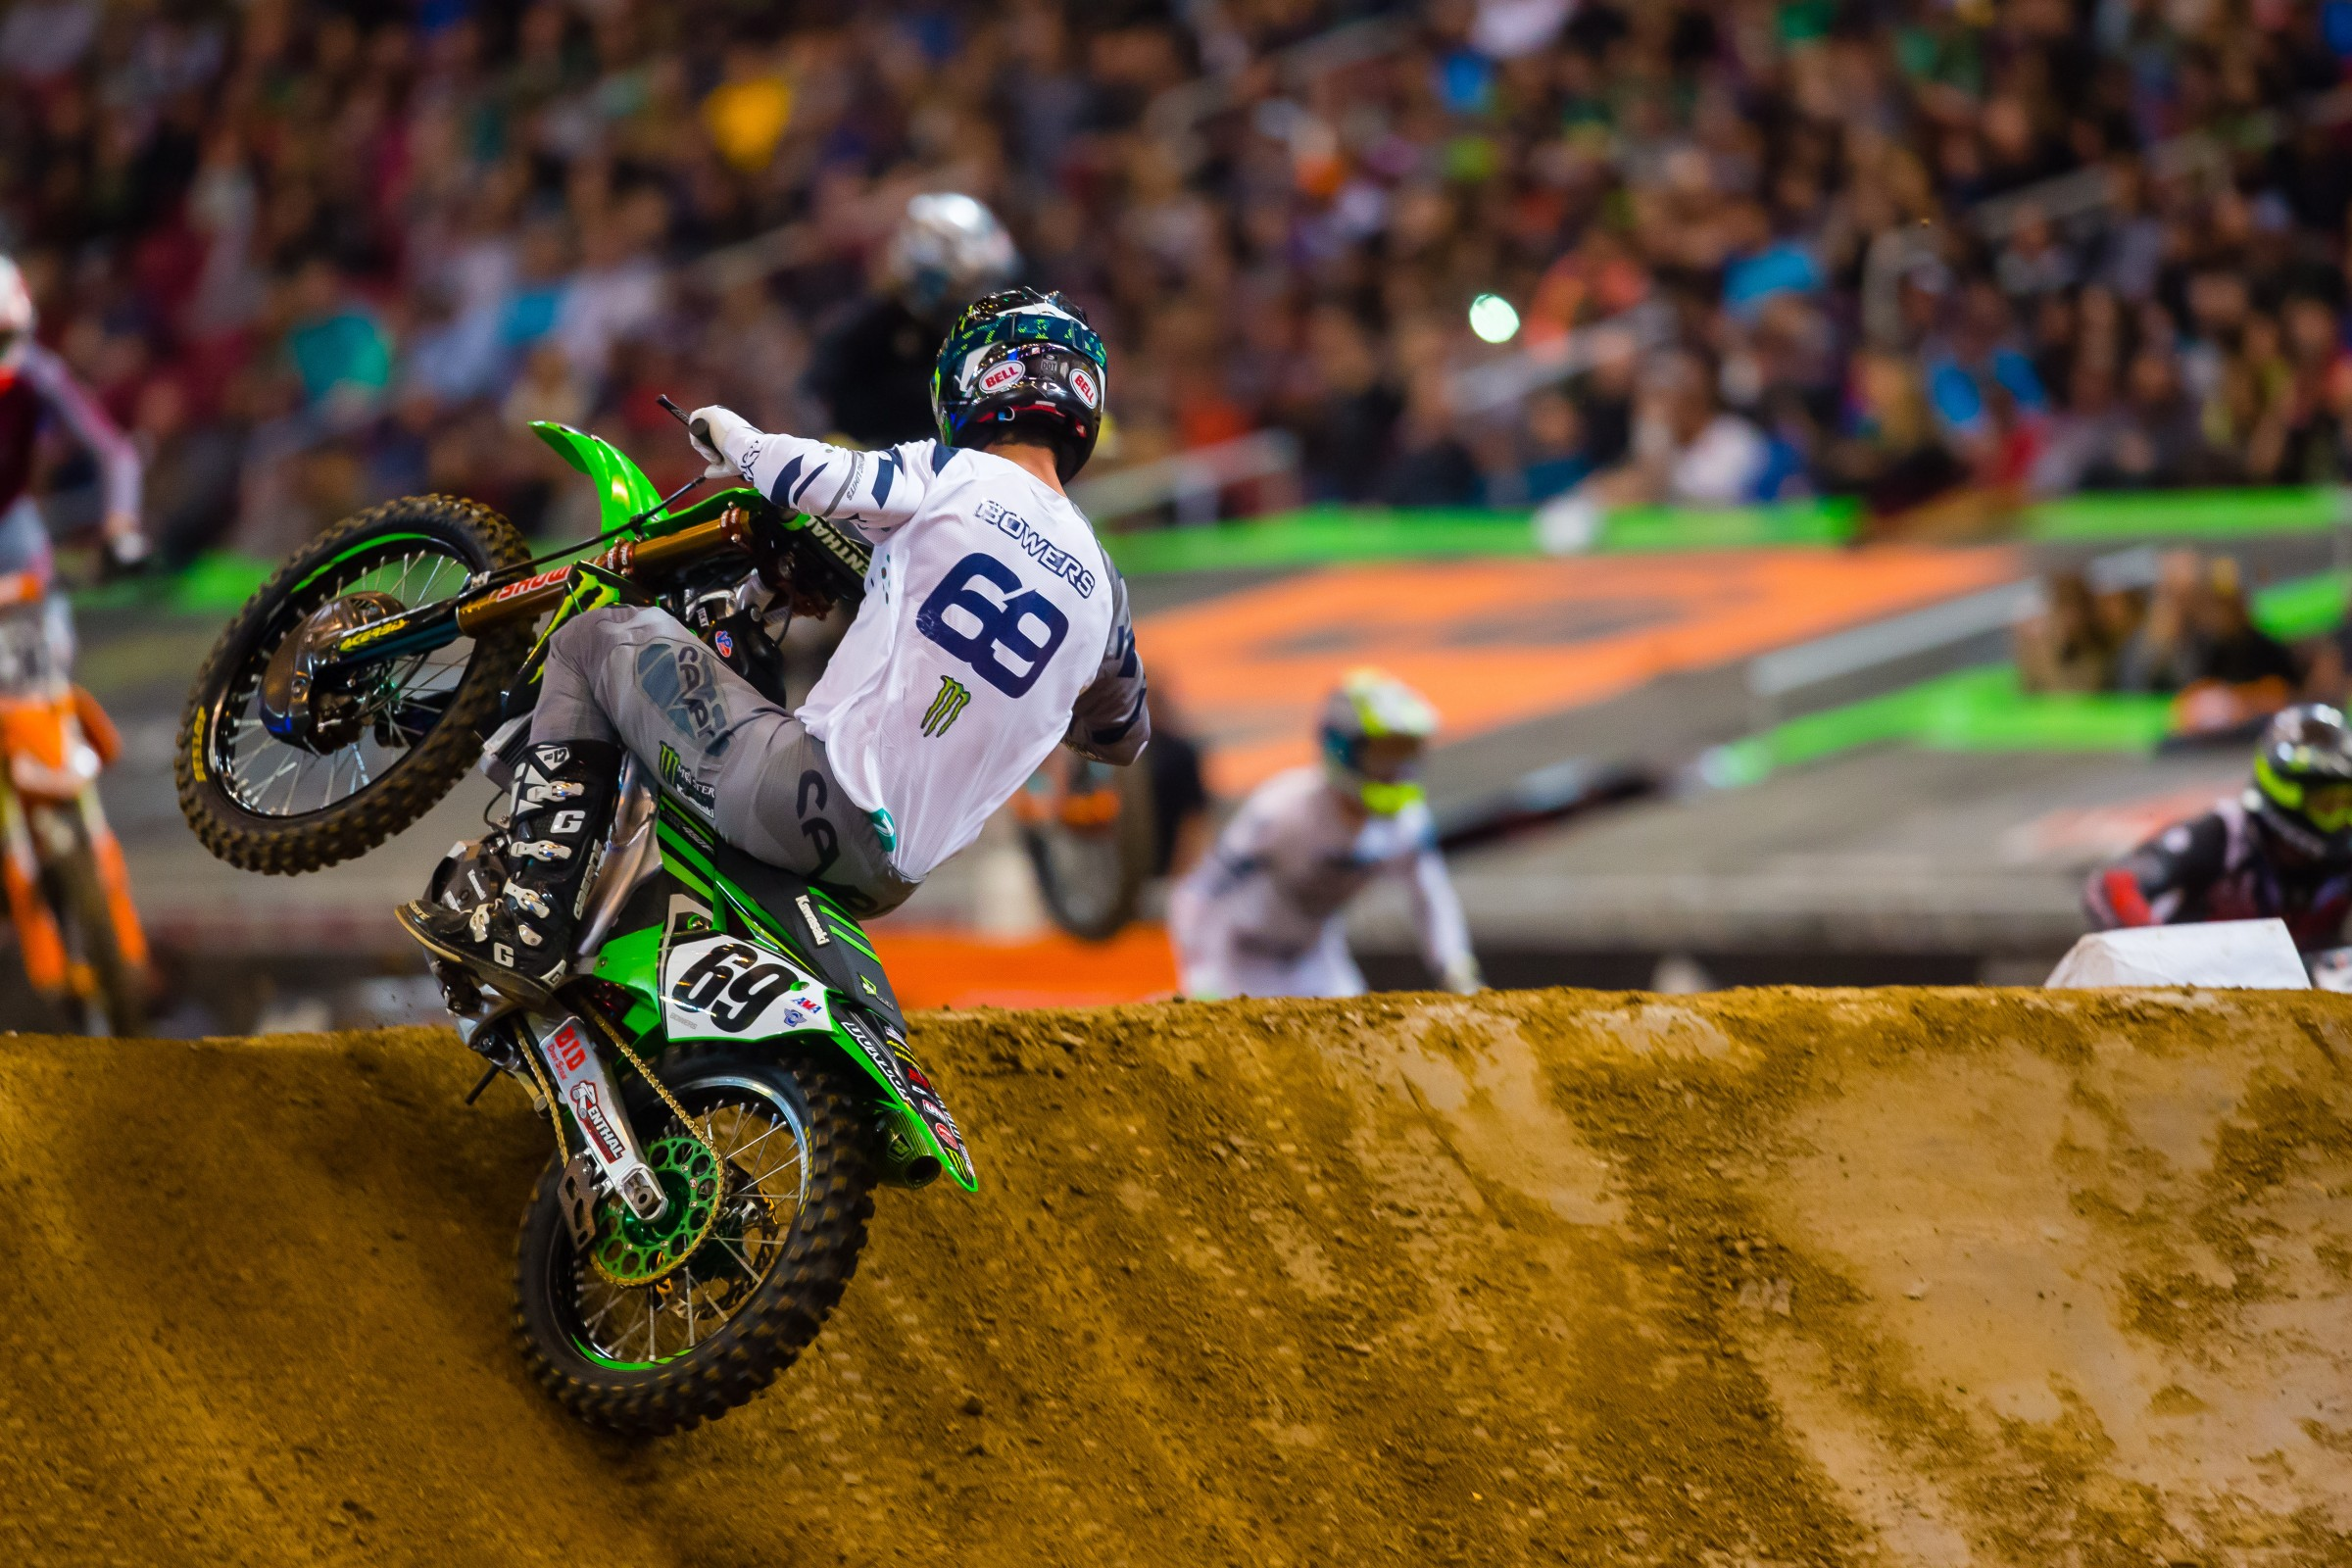 Bowers, riding as a fill-in for Josh Grant with Monster Energy Kawasaki, left St. Louis with a 14th-place finish.